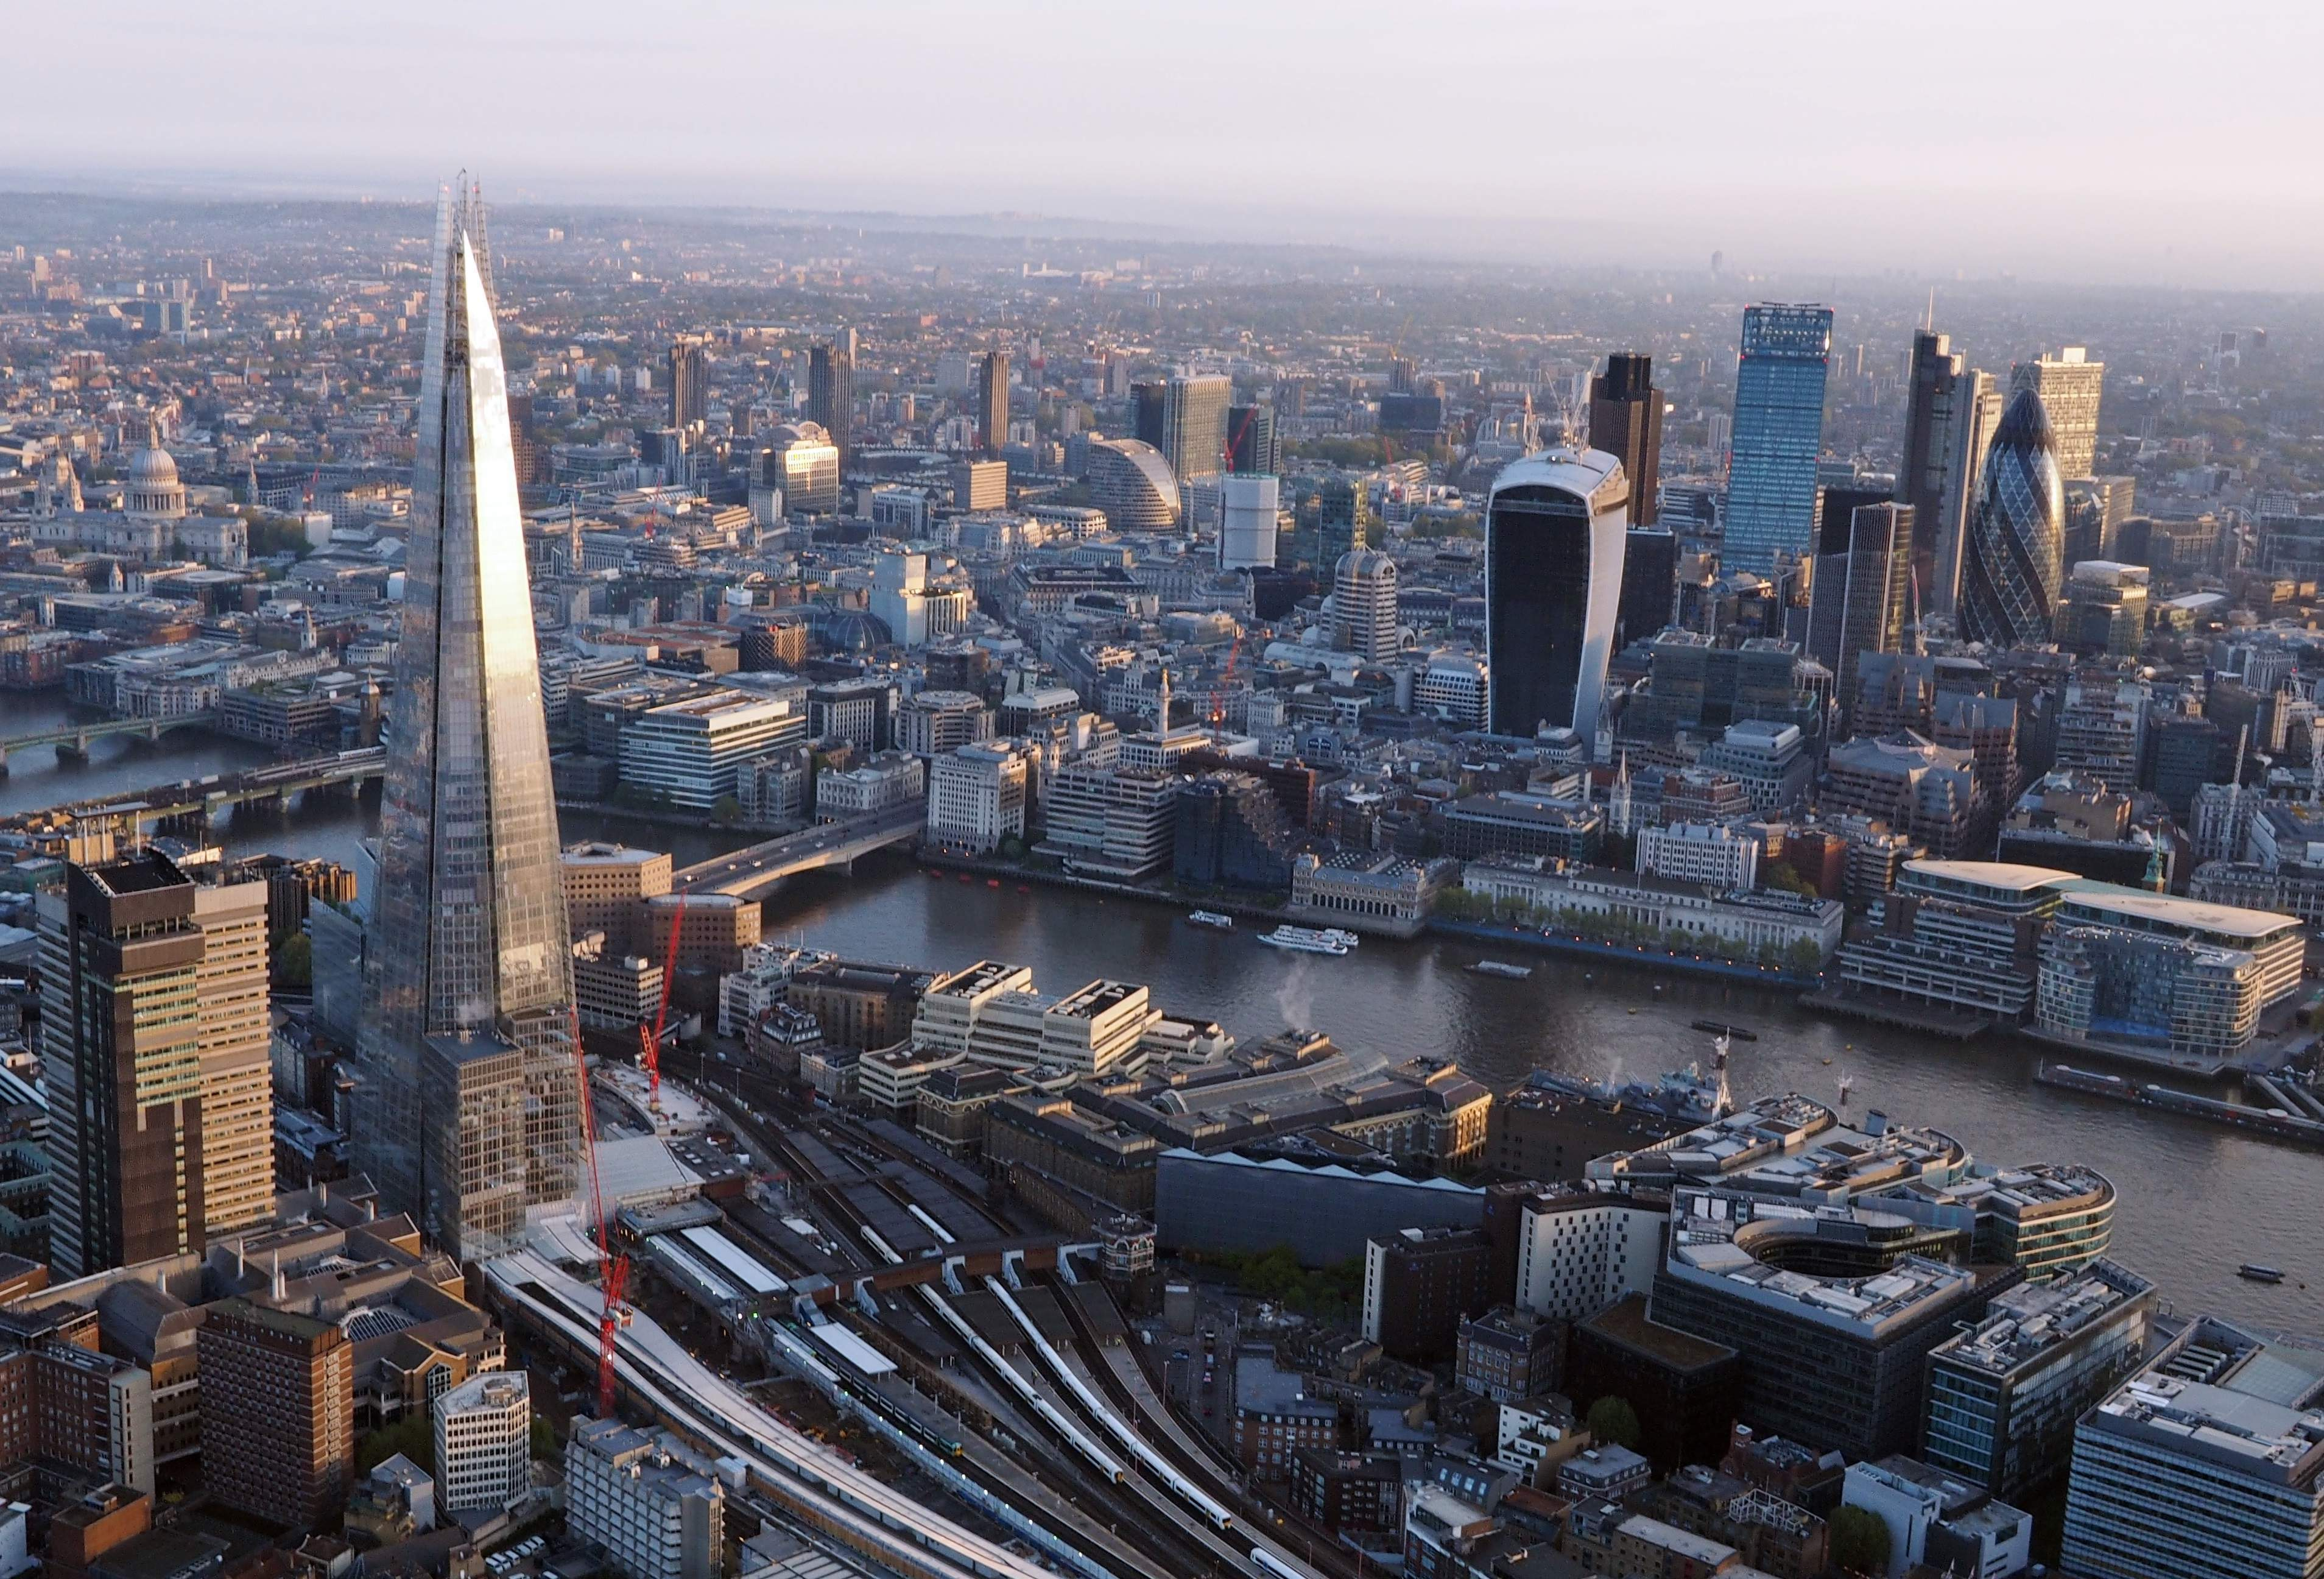 London tourism is set to increase 30 percent by 2025